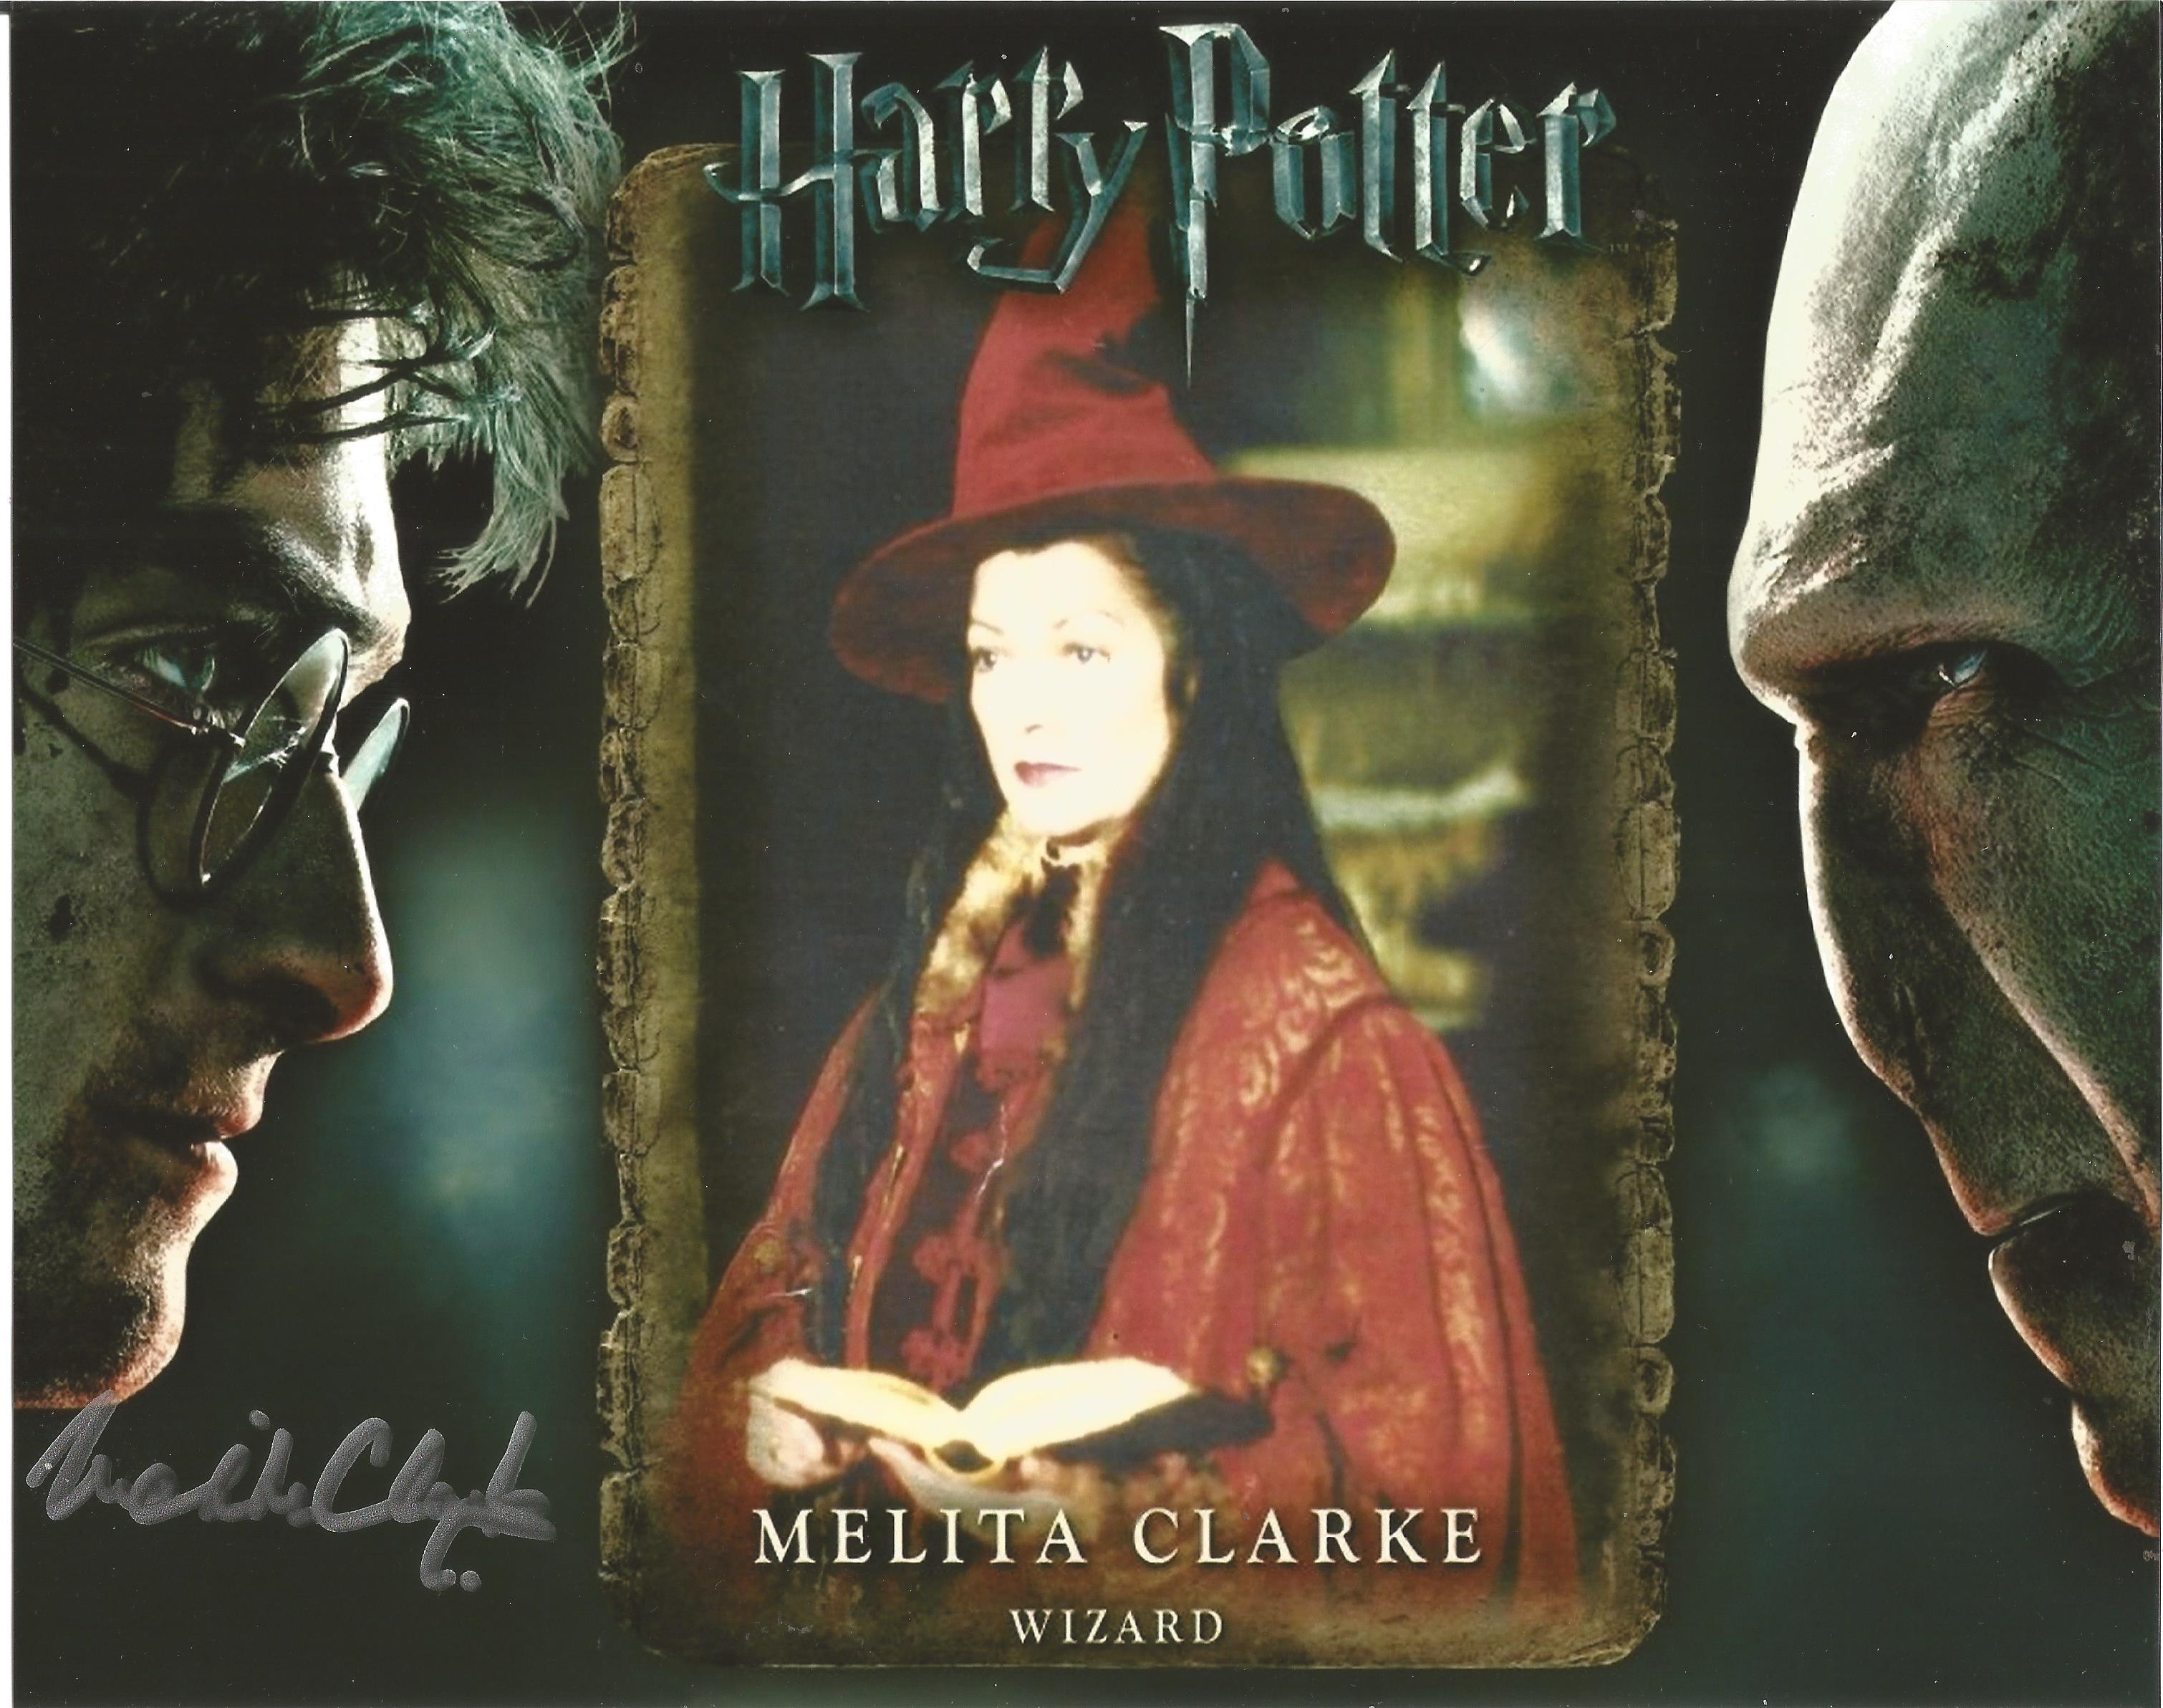 Harry Potter Melita Clarke signed 10x8 colour image. Image of her time playing a wizard on popular